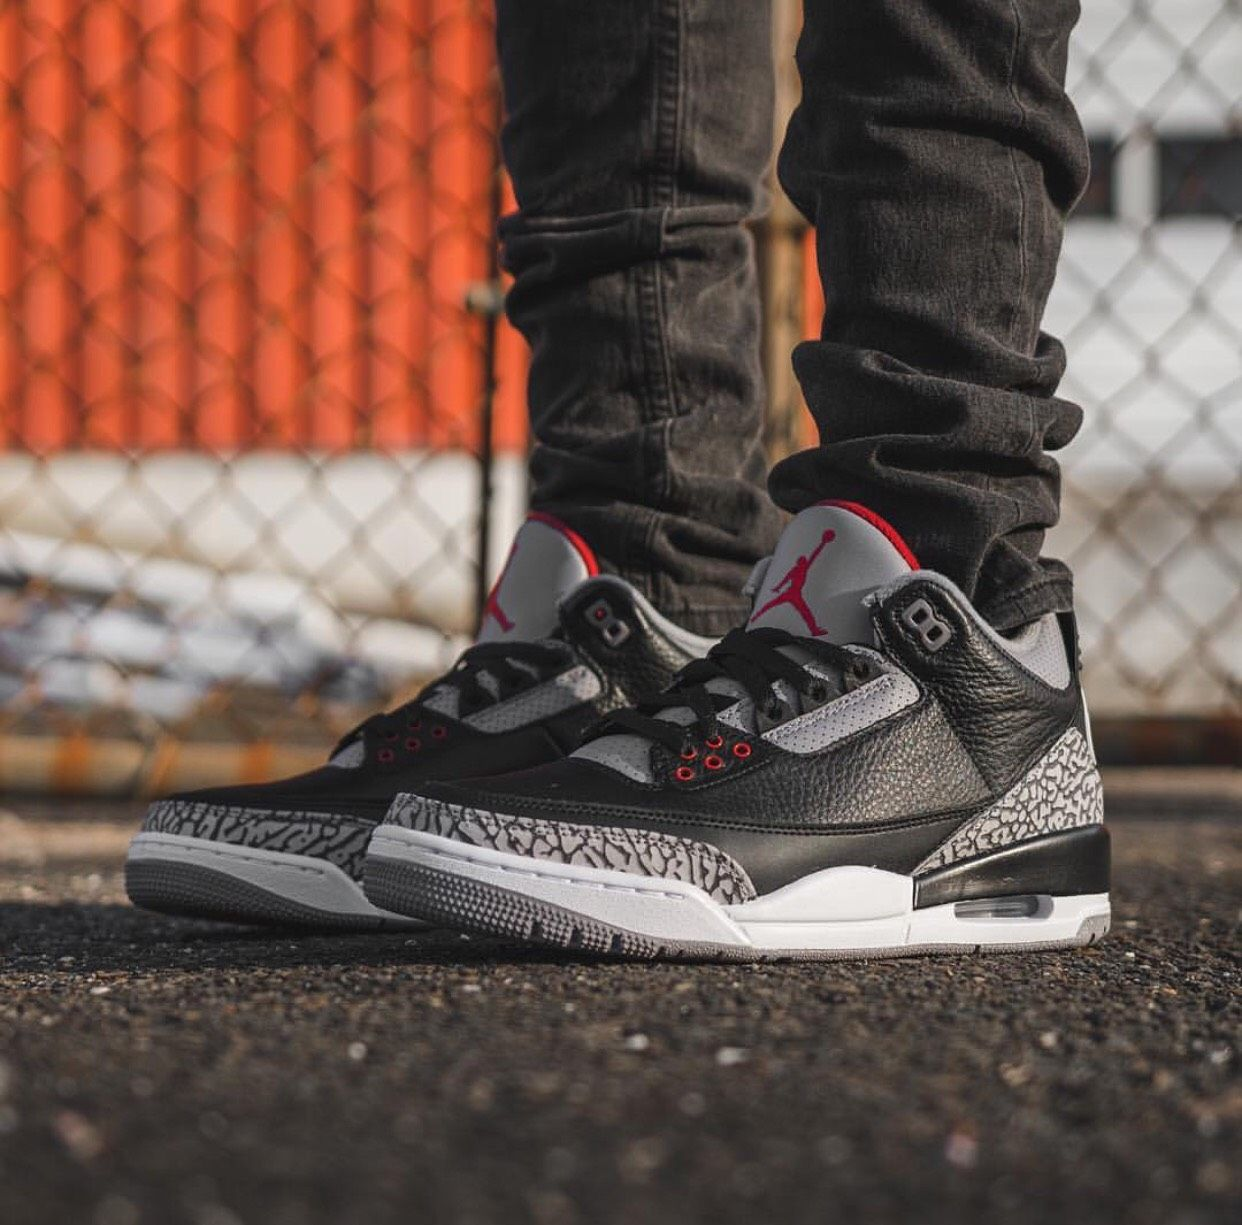 89d3b42421ecaa On-feet look at the Air Jordan 3 Retro OG Black Cement that releases ...